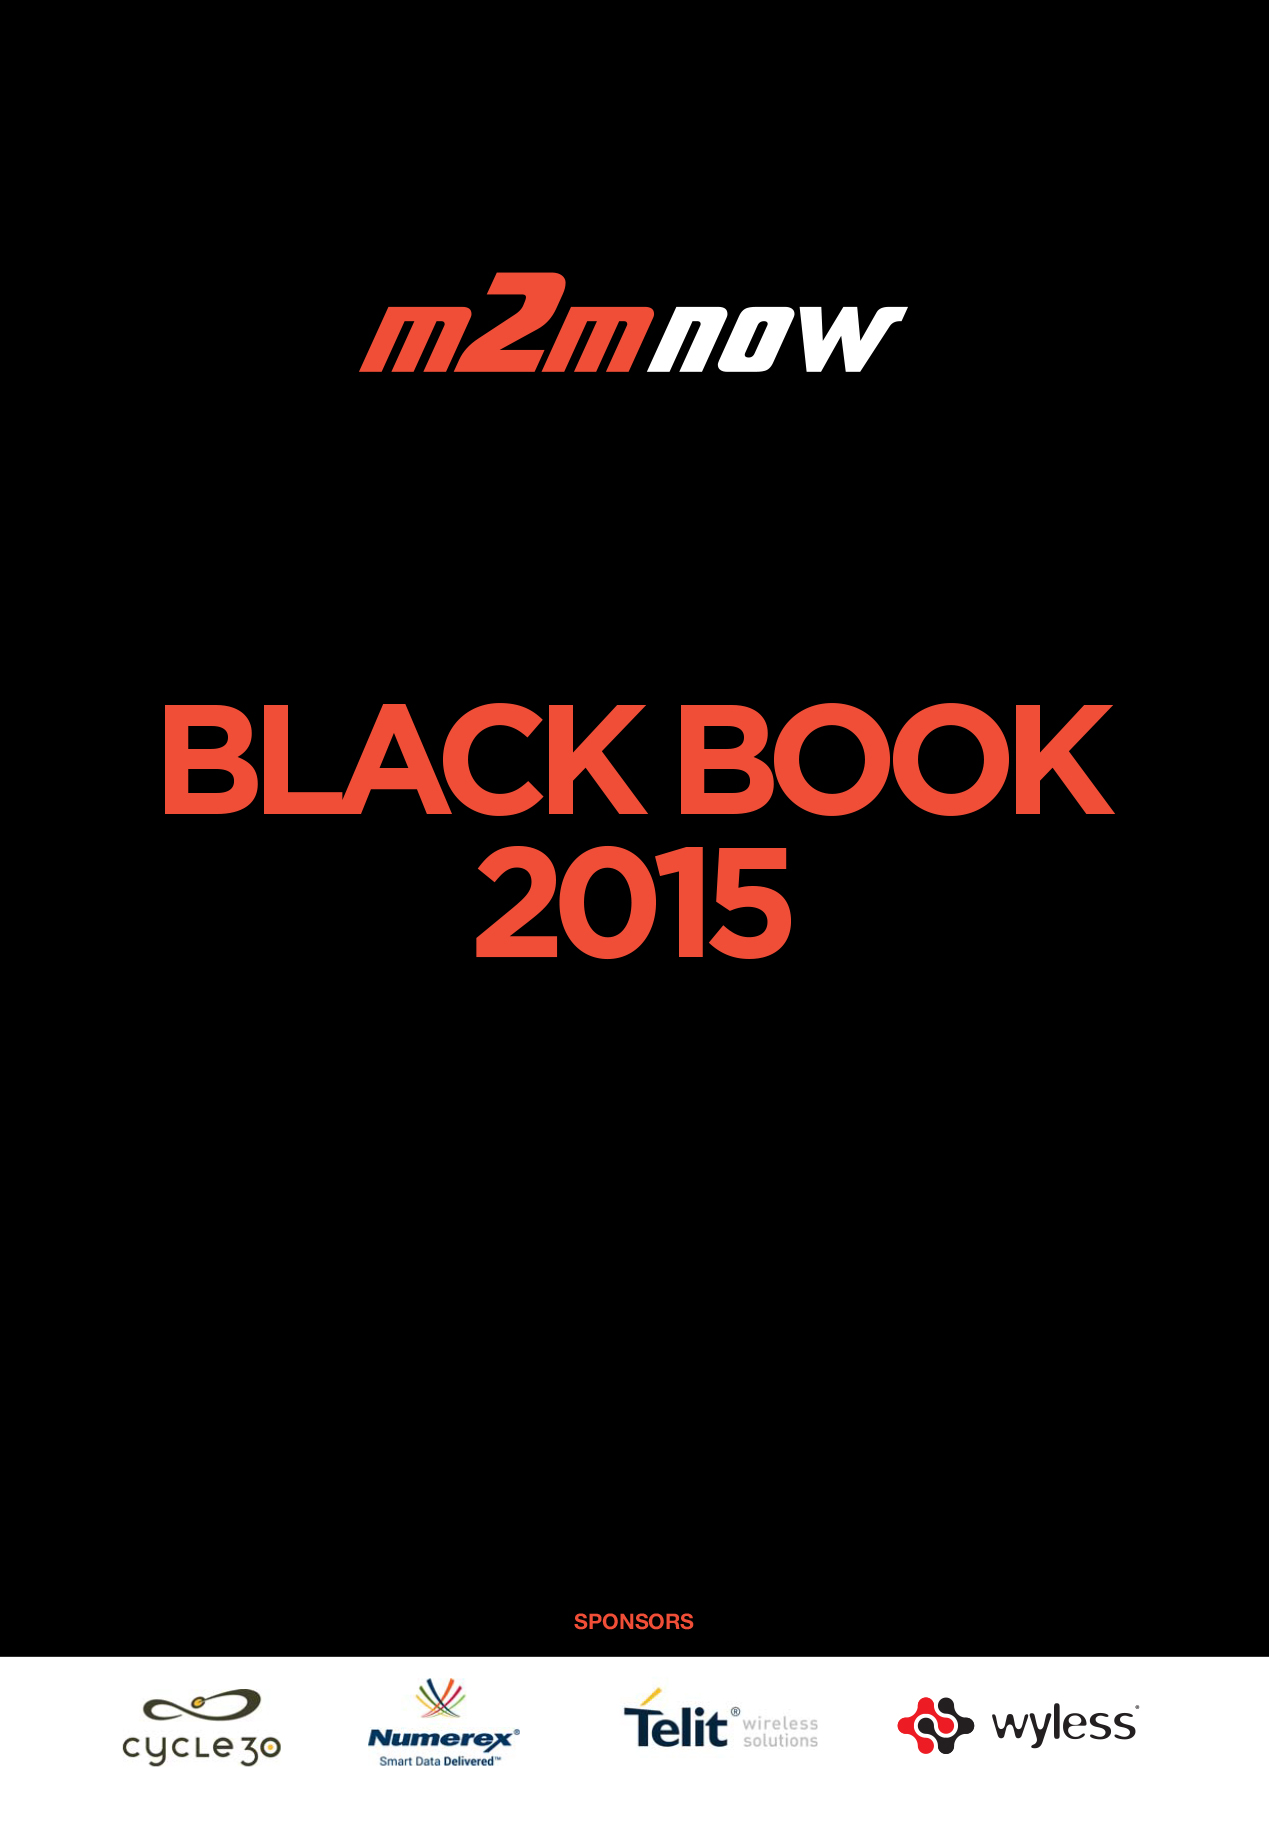 Black Book 2014 M2M aw_Layout 1